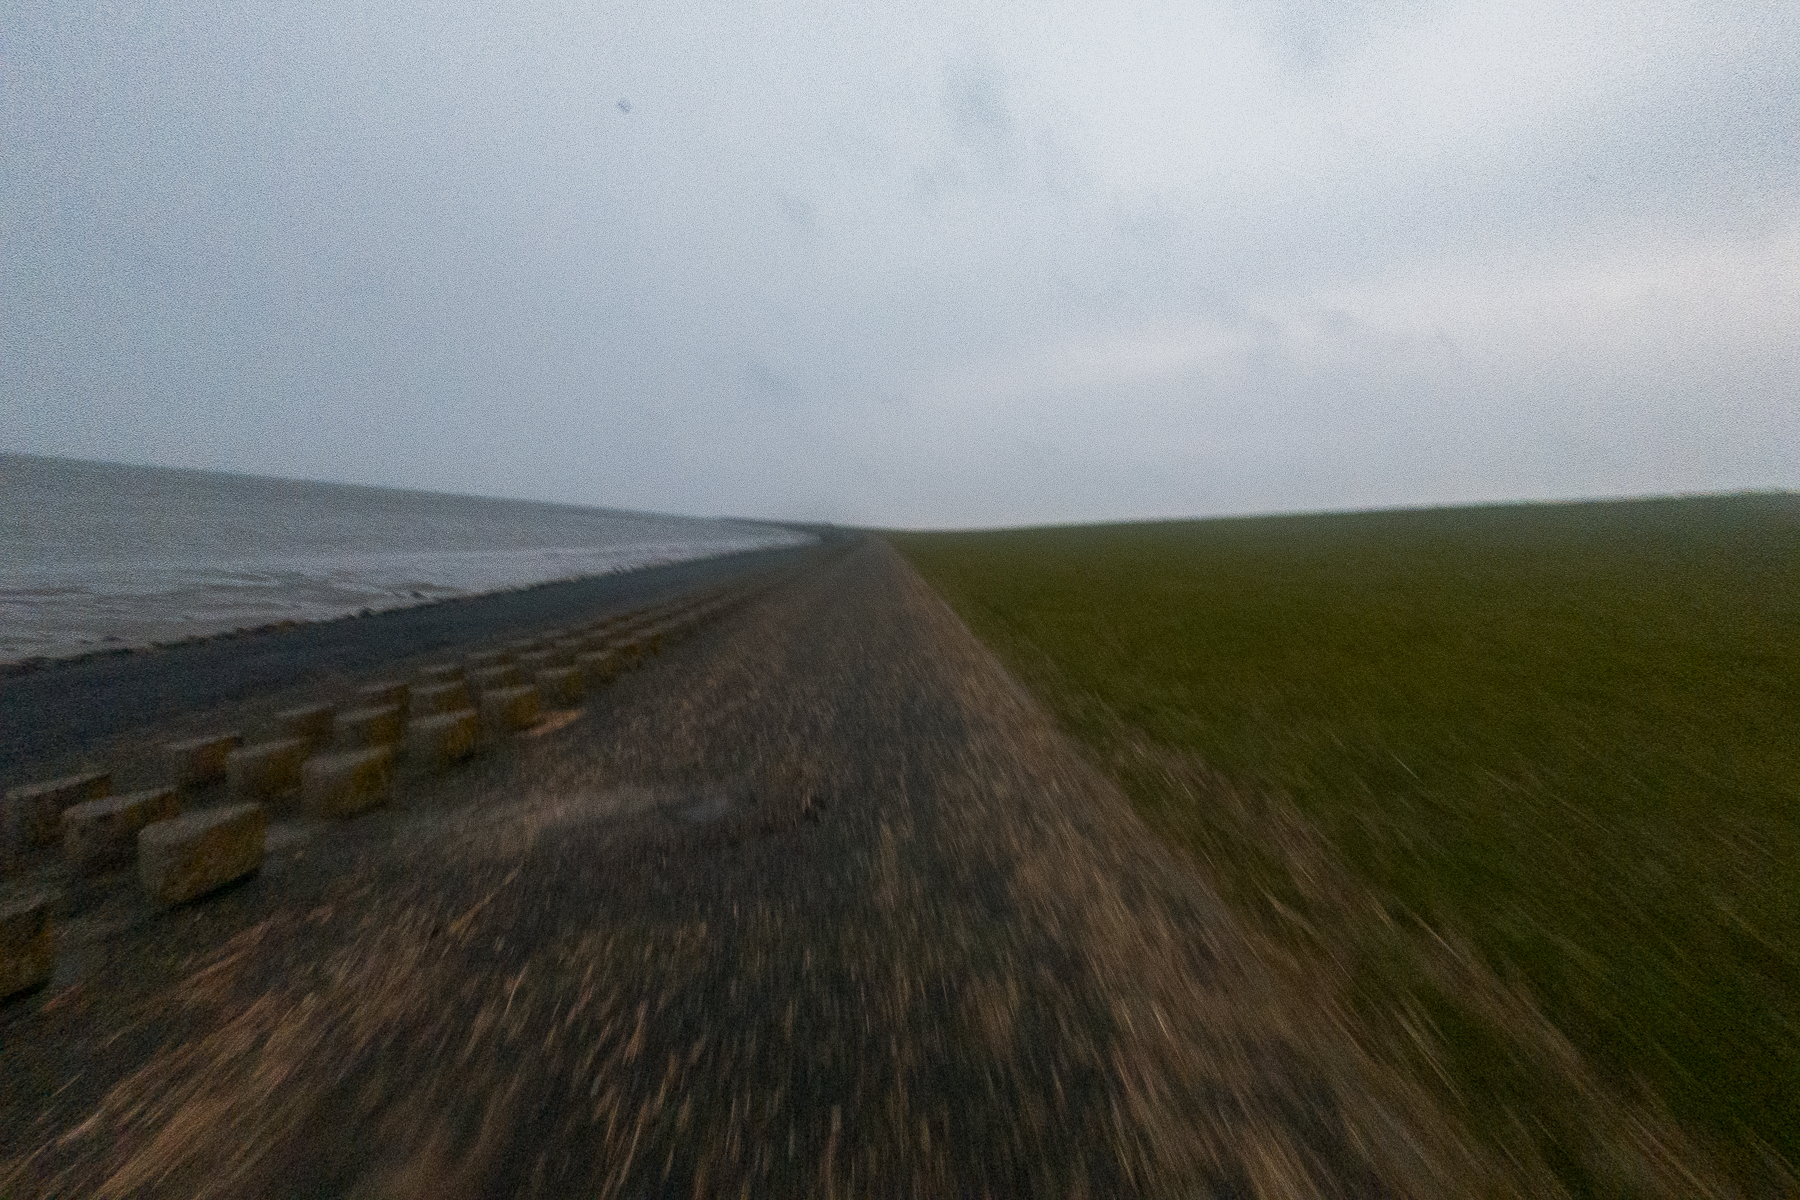 Welcome to the windy East Frisian coast, a particularly refreshing running location. Norddeich, Germany, March 6, 2020.